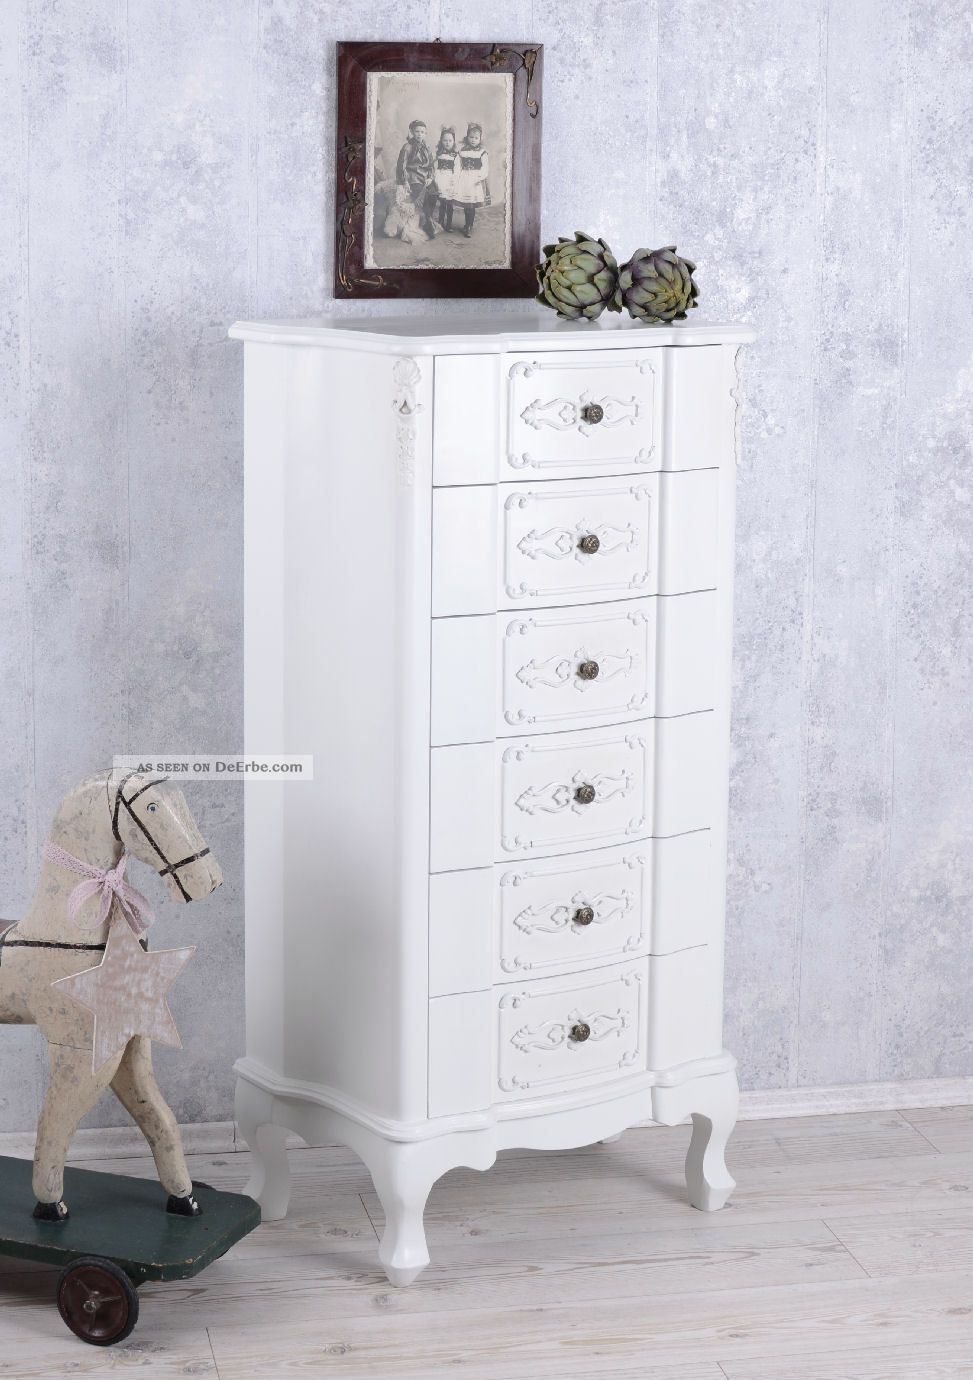 kommode weis shabby heimdesign innenarchitektur und. Black Bedroom Furniture Sets. Home Design Ideas